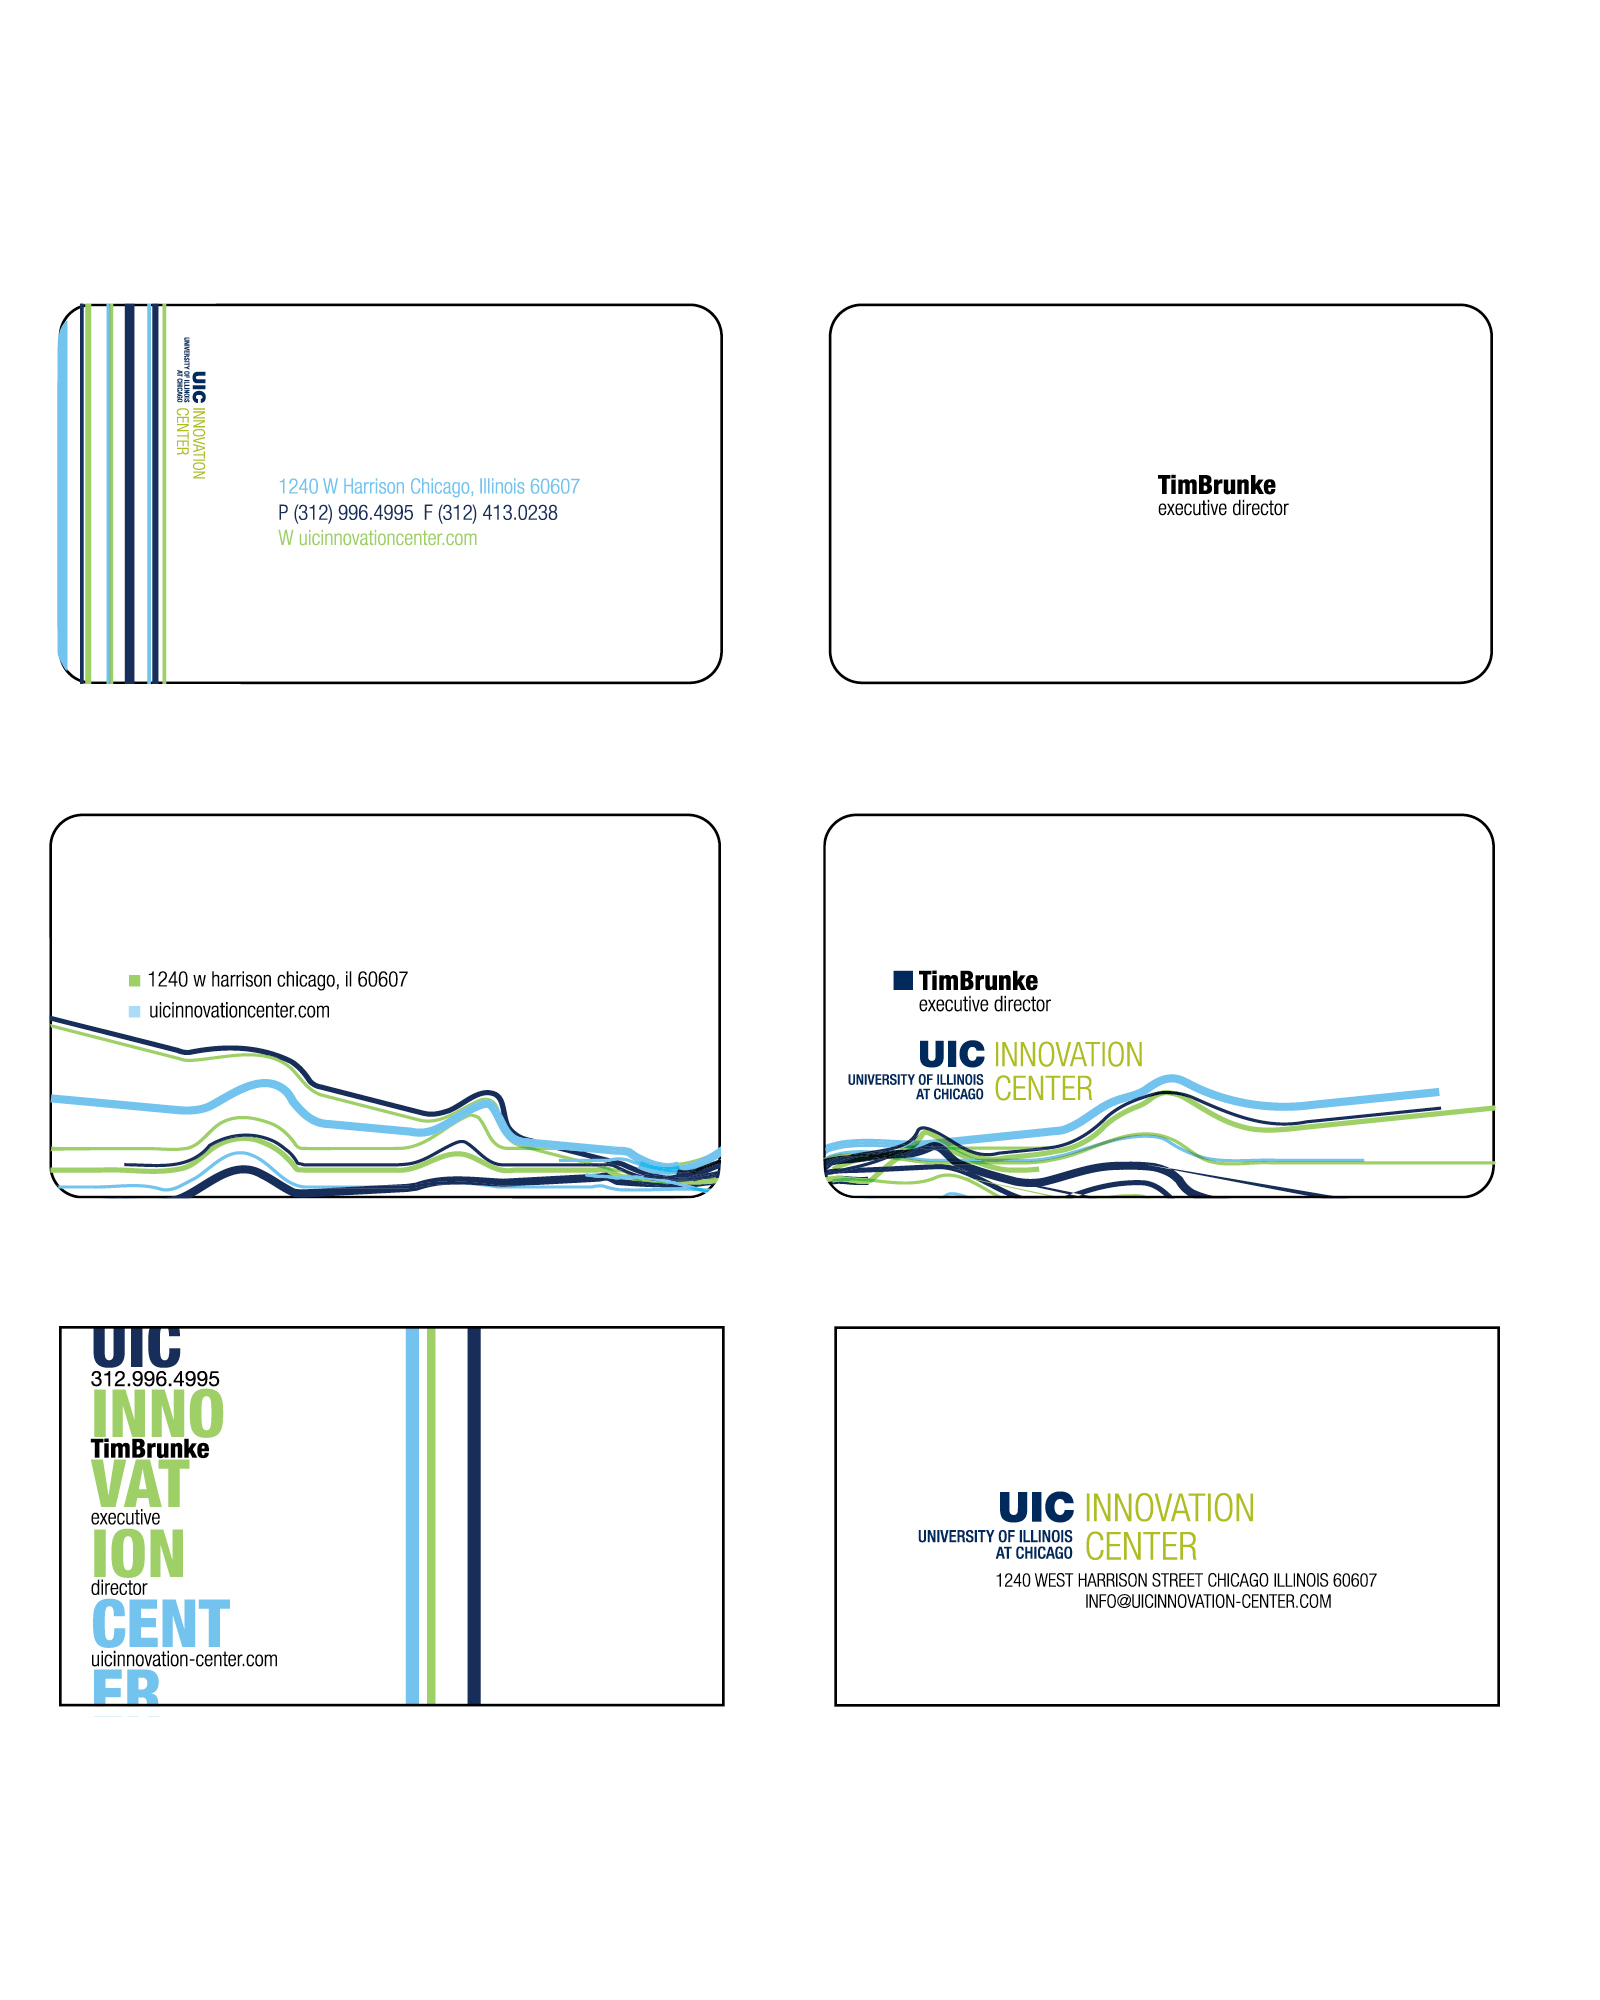 Standard Size of Business Cards cm images